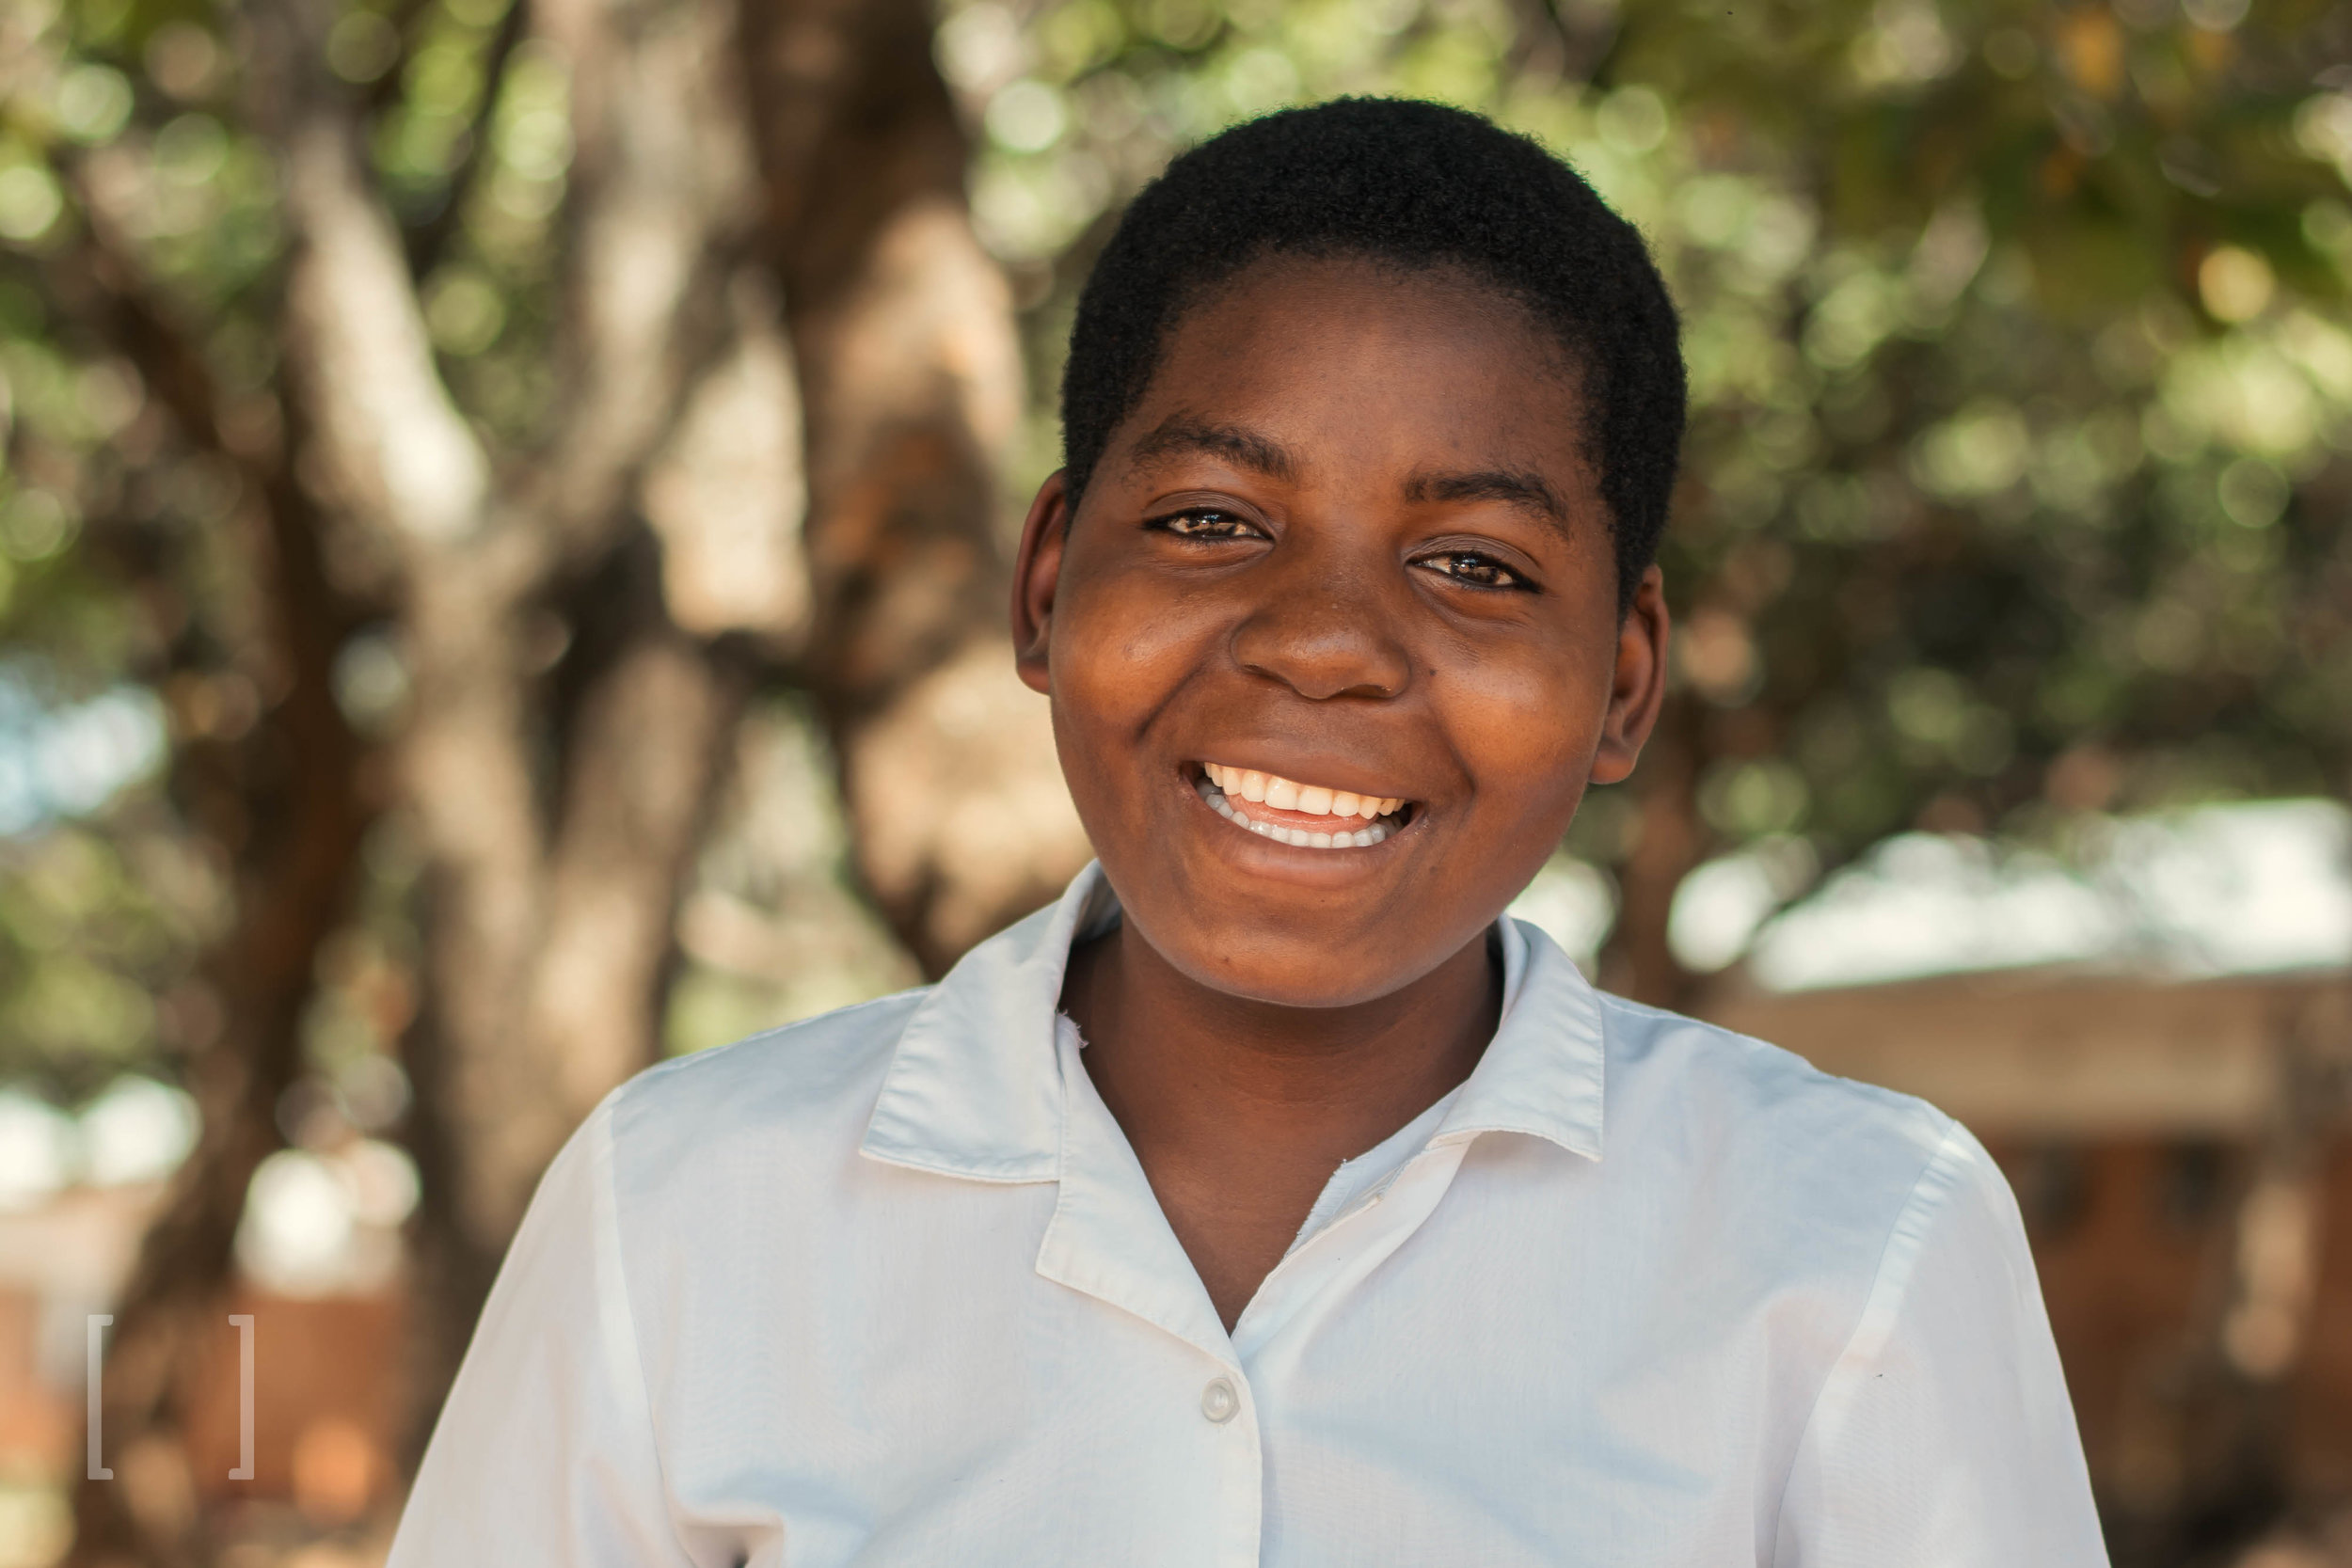 Tendai - Tendai was born on 27 September 2001. She is happy to be at Home of Hope and enjoys playing with lots of friends. She would like to be a doctor one day. Be a friend to Tendai and sponsor her today!